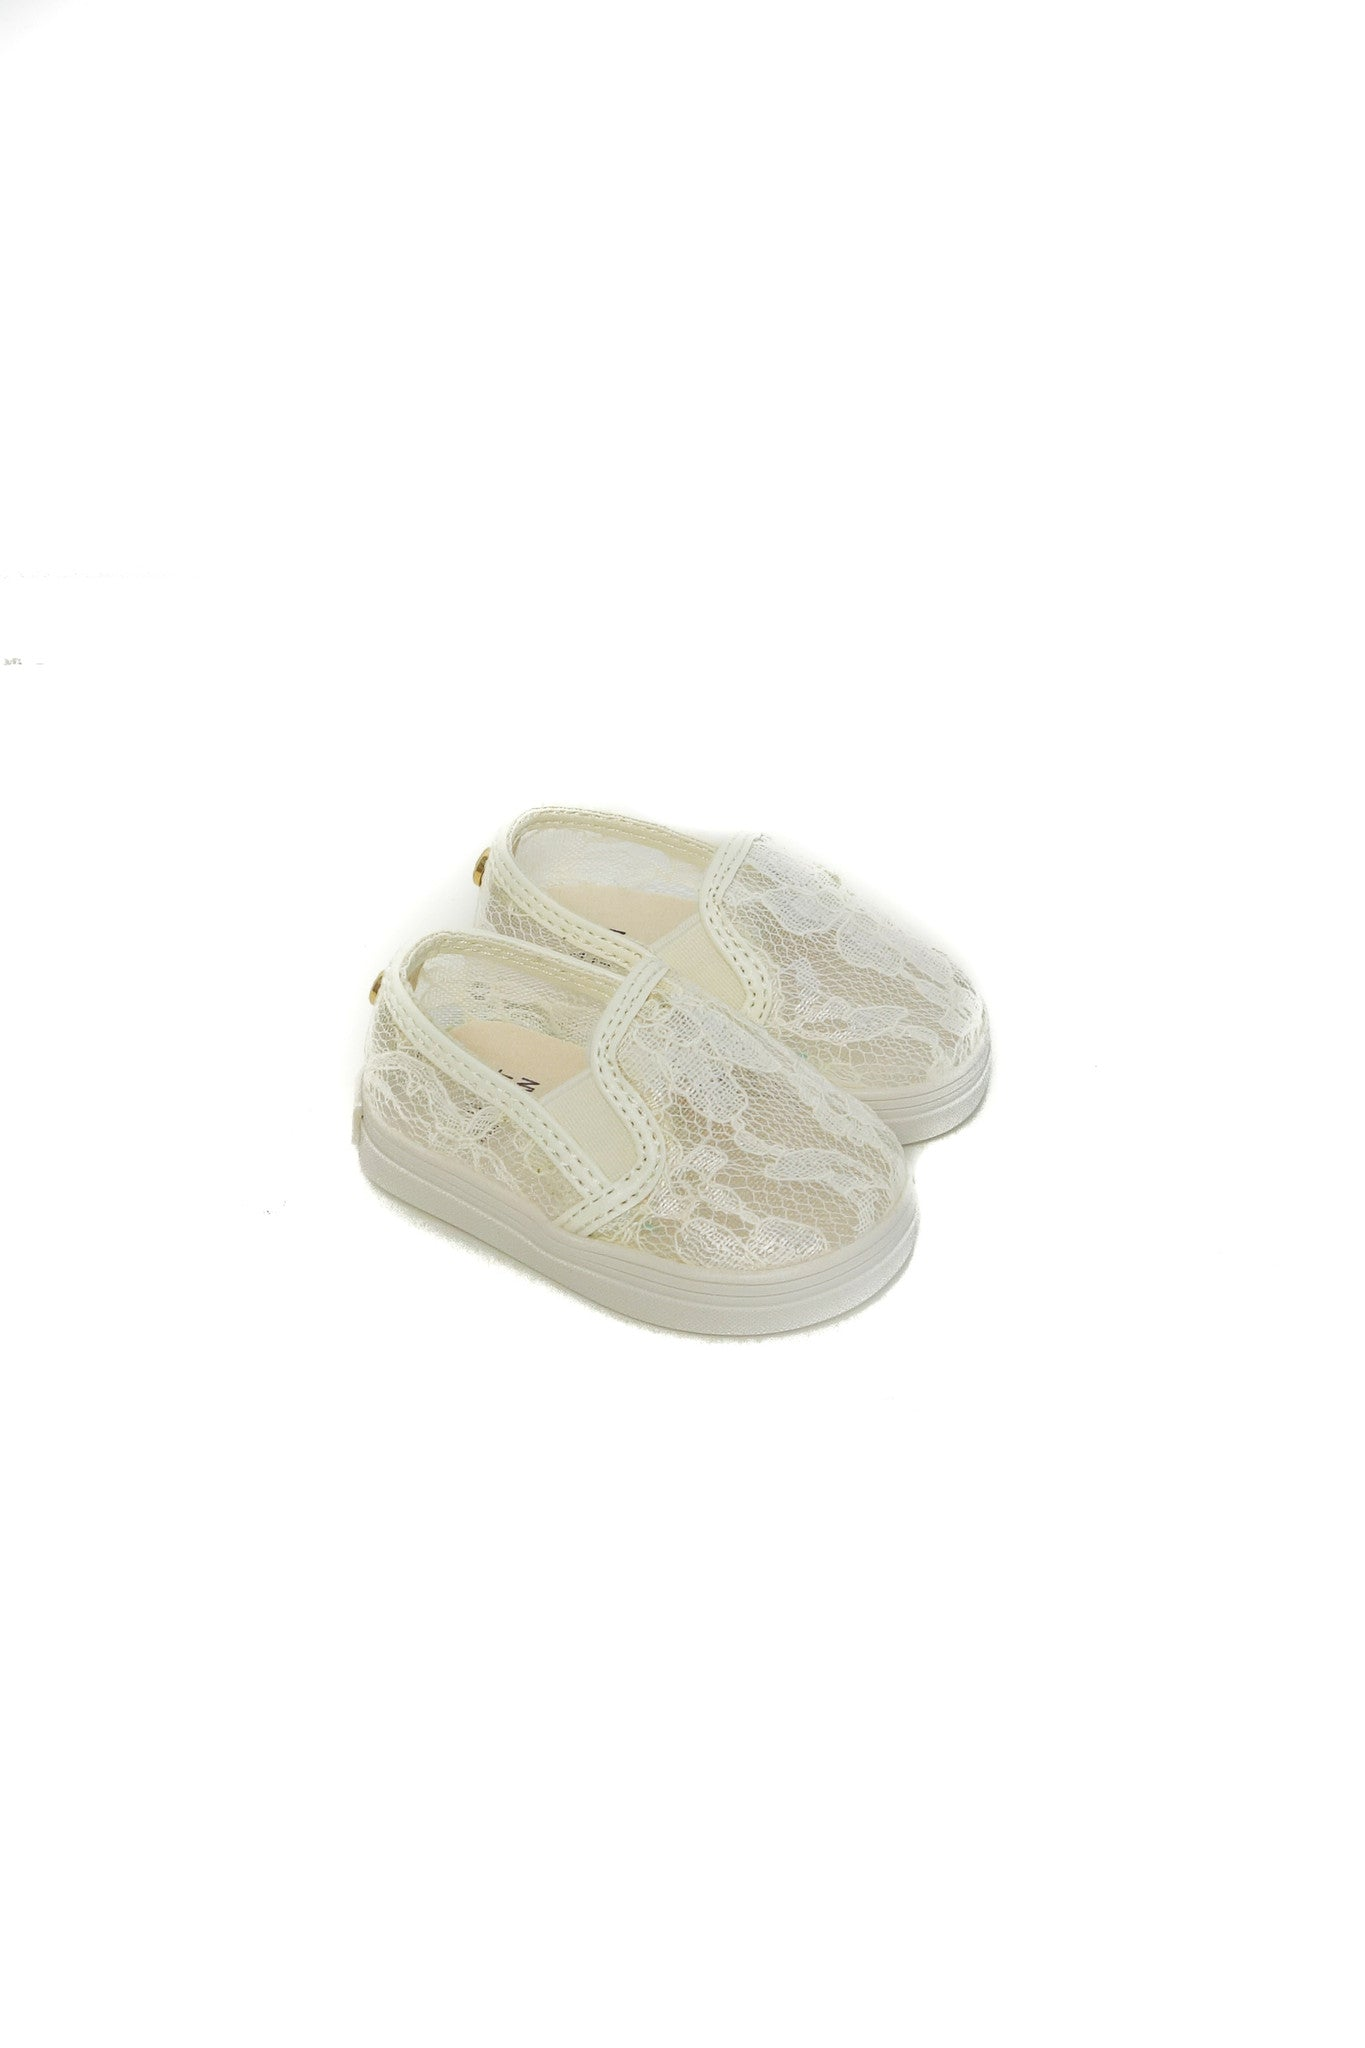 10003200 Stuart Weitzman Baby~Shoes 0-3M at Retykle